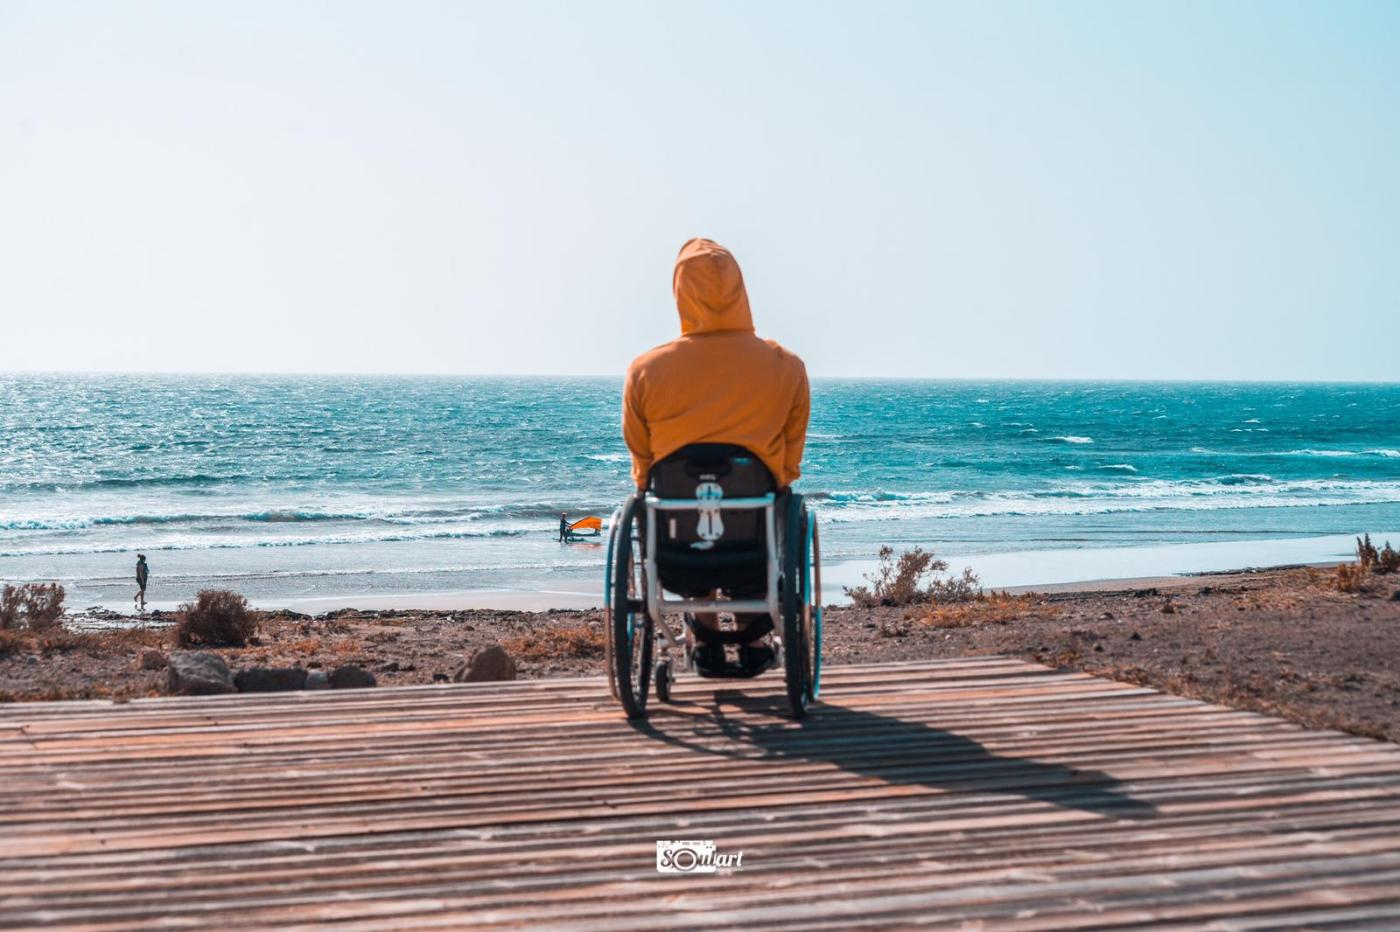 Wheelchair user with a yellow hoody on a wooden plattform on the beach. The photo is taken from behind. The hood covering the head. In the background is the sea with one windsurfer on the shore.